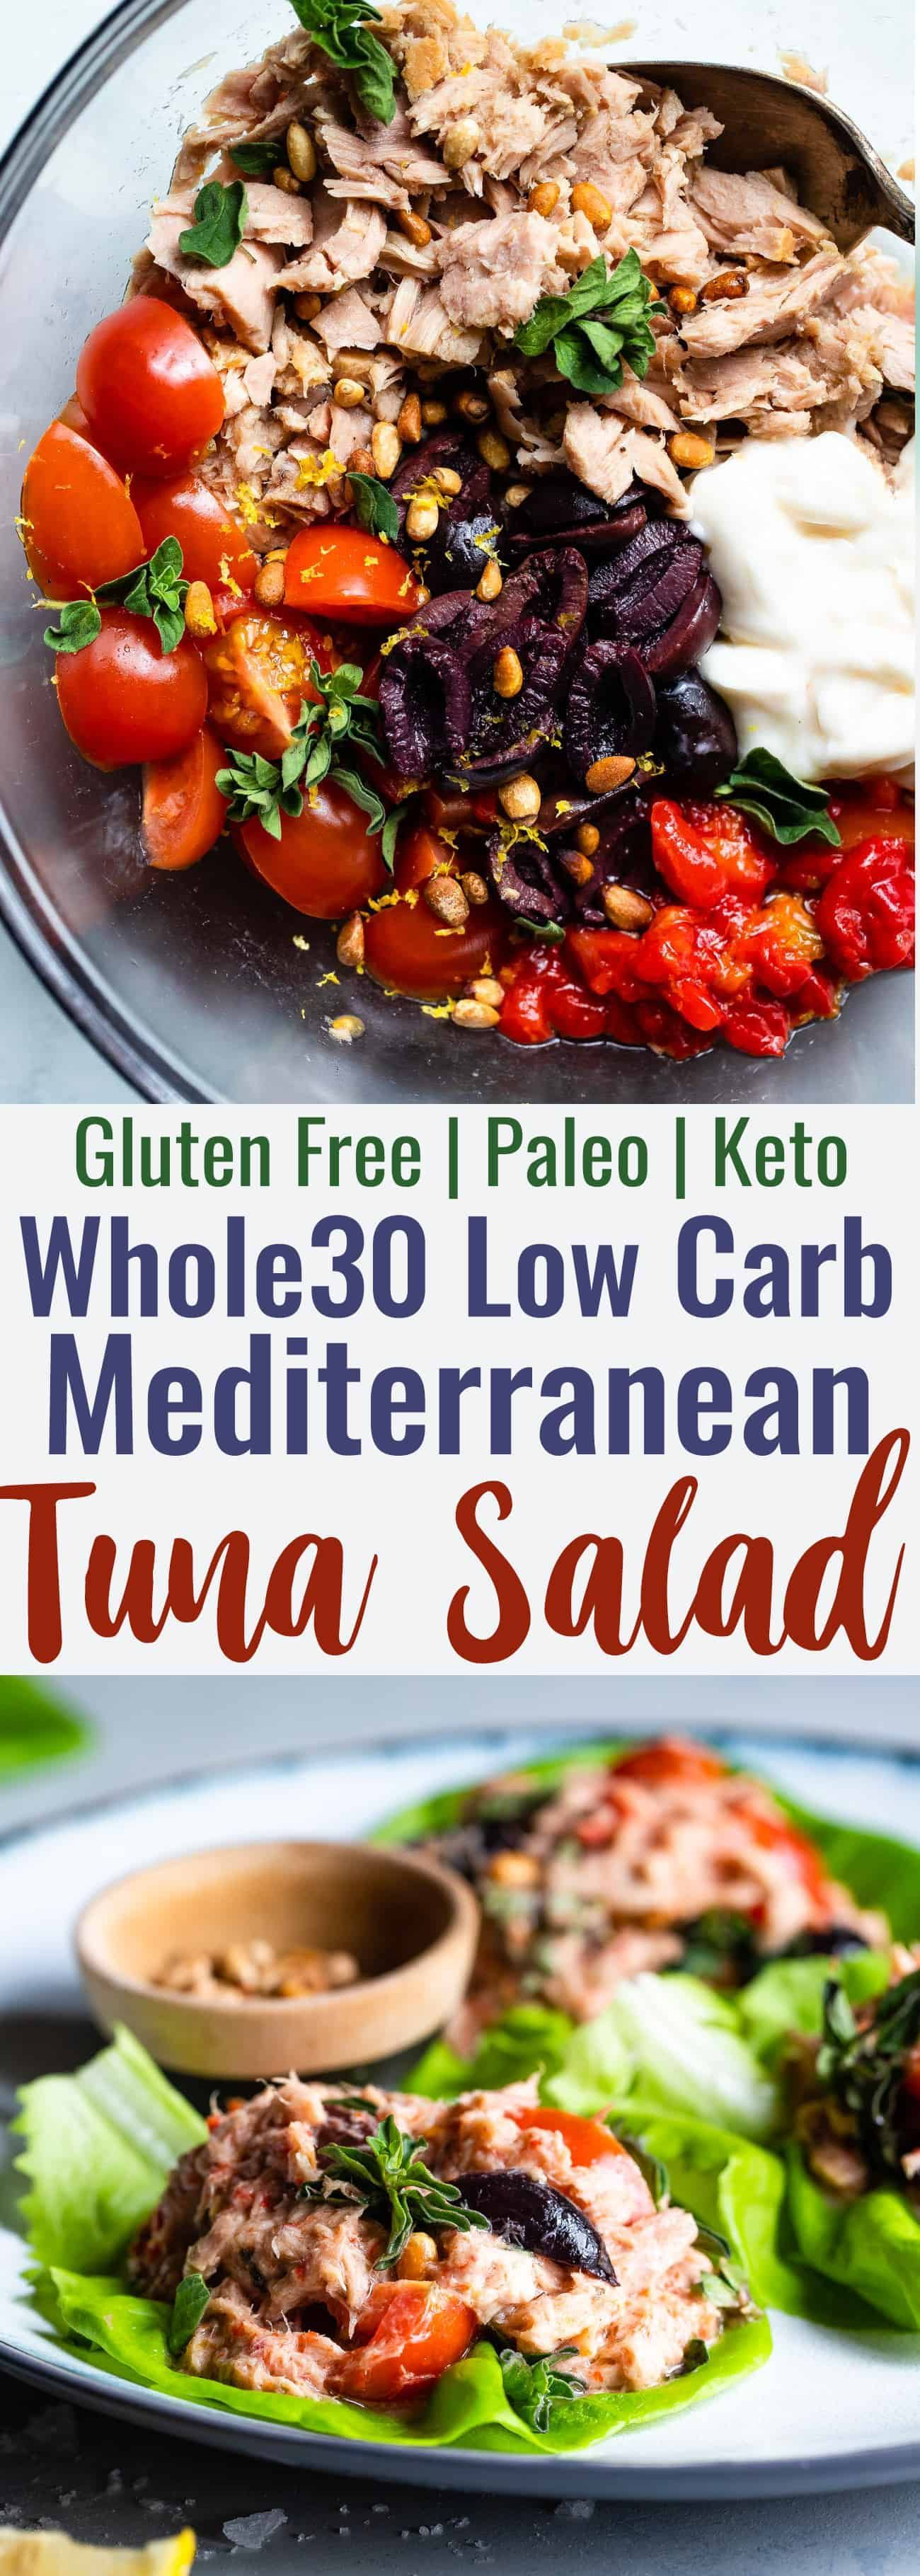 Paleo Mediterranean Tuna Salad with Olives -A quick and easy recipe that is great for meal prep an...